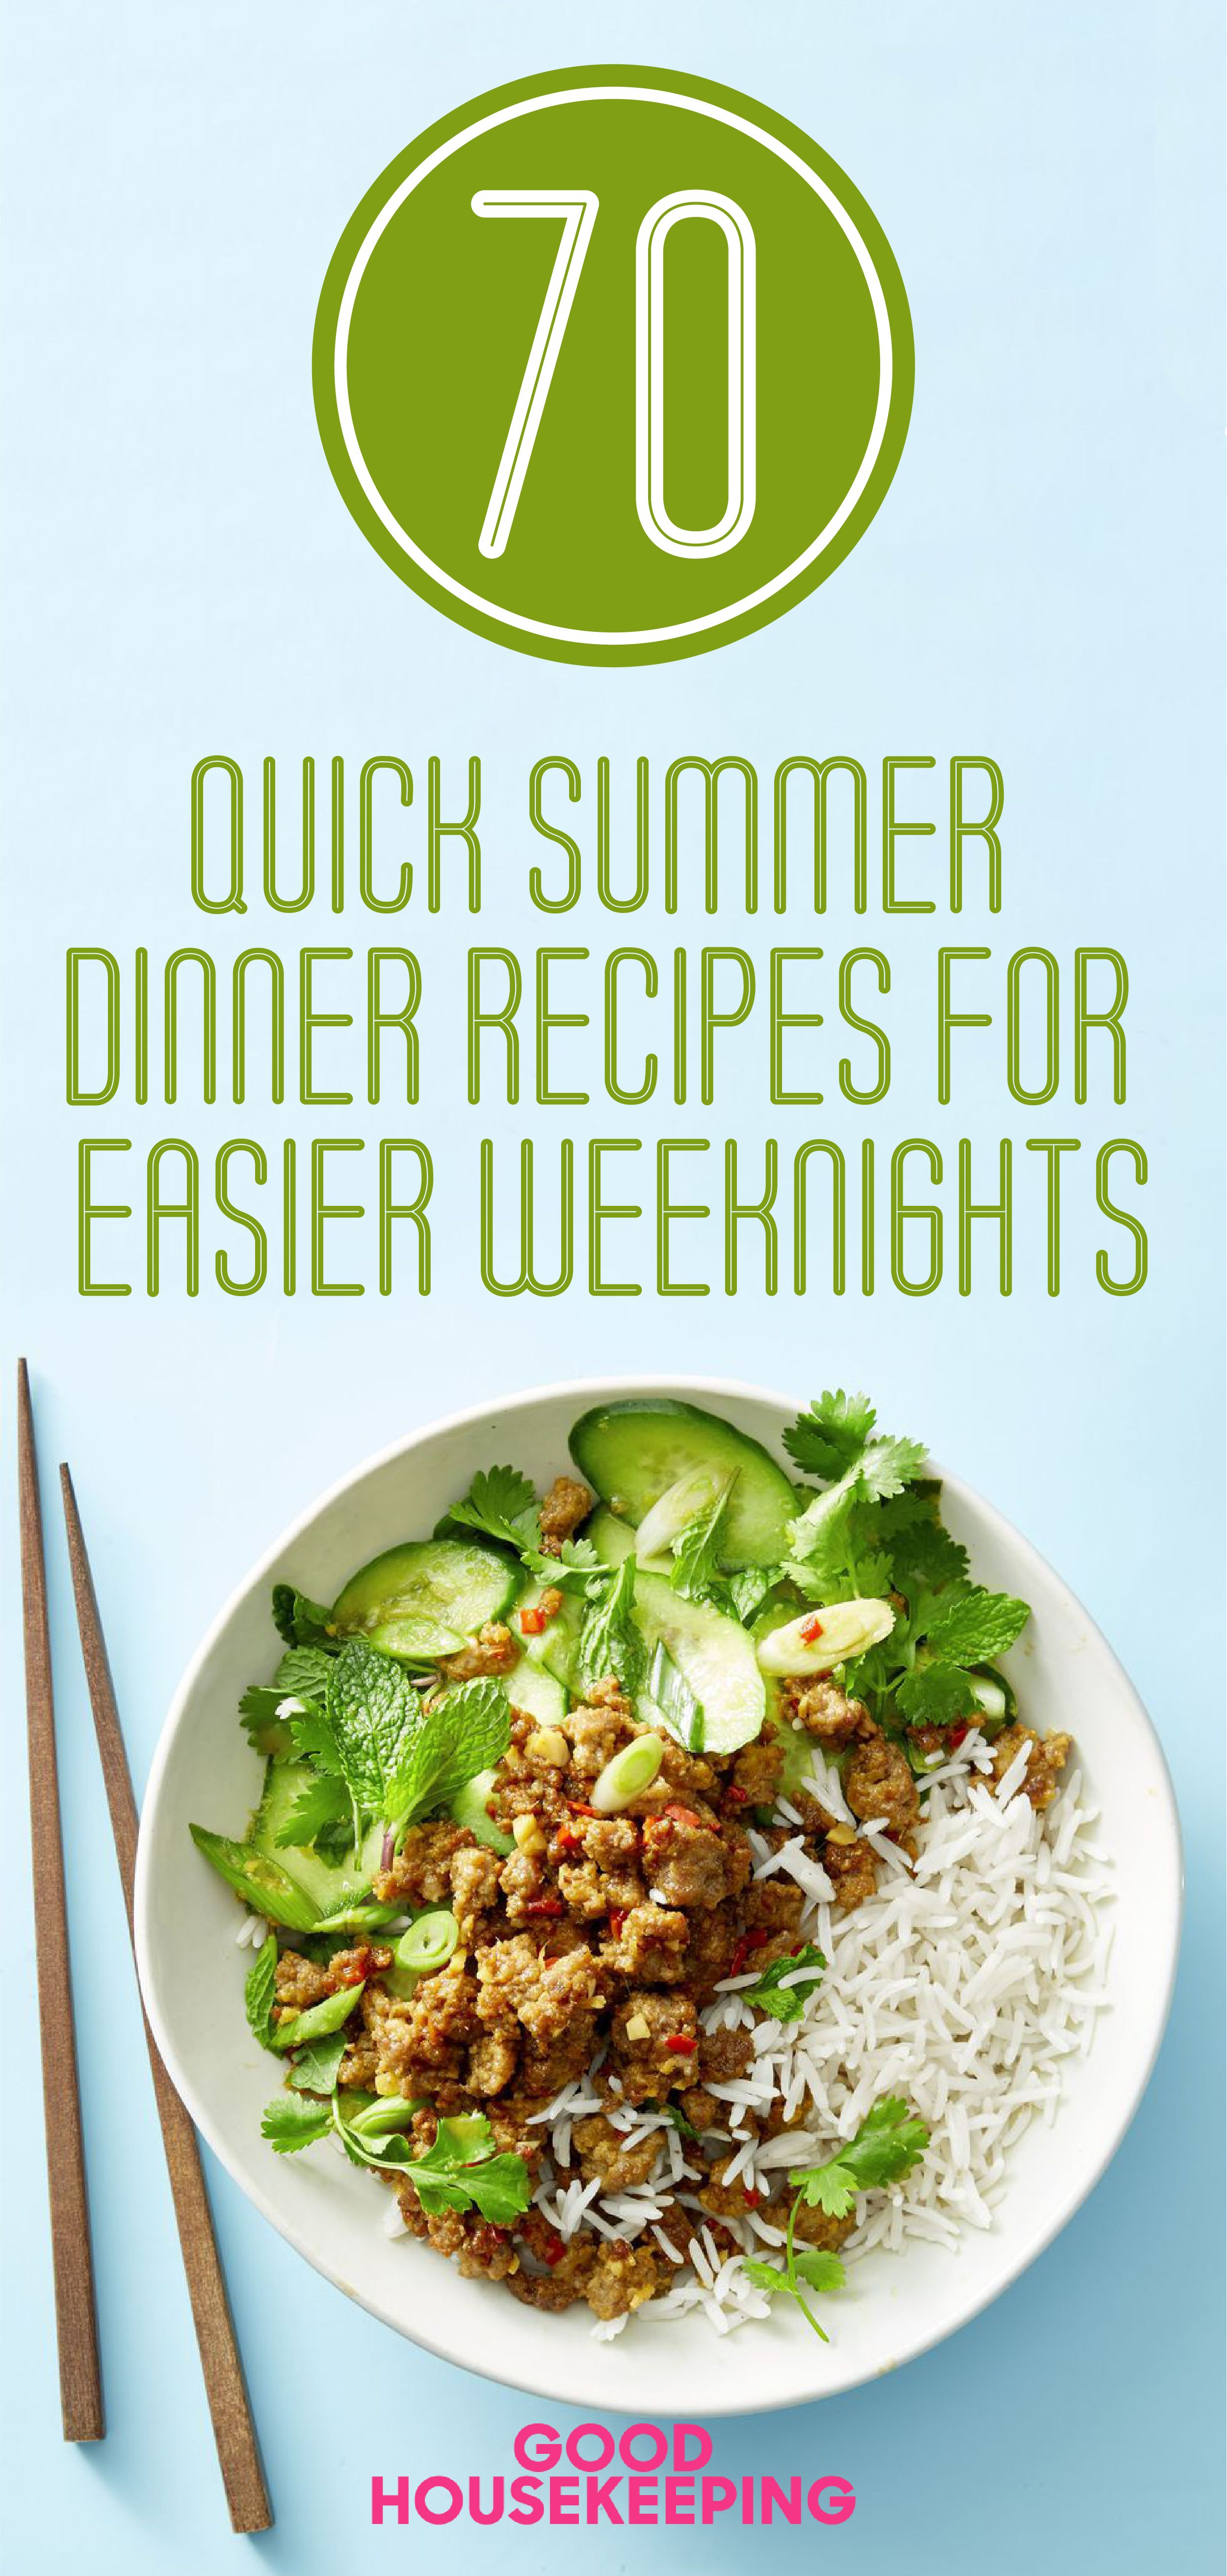 65 Quick Summer Dinner Recipes For Easier Weeknights Food